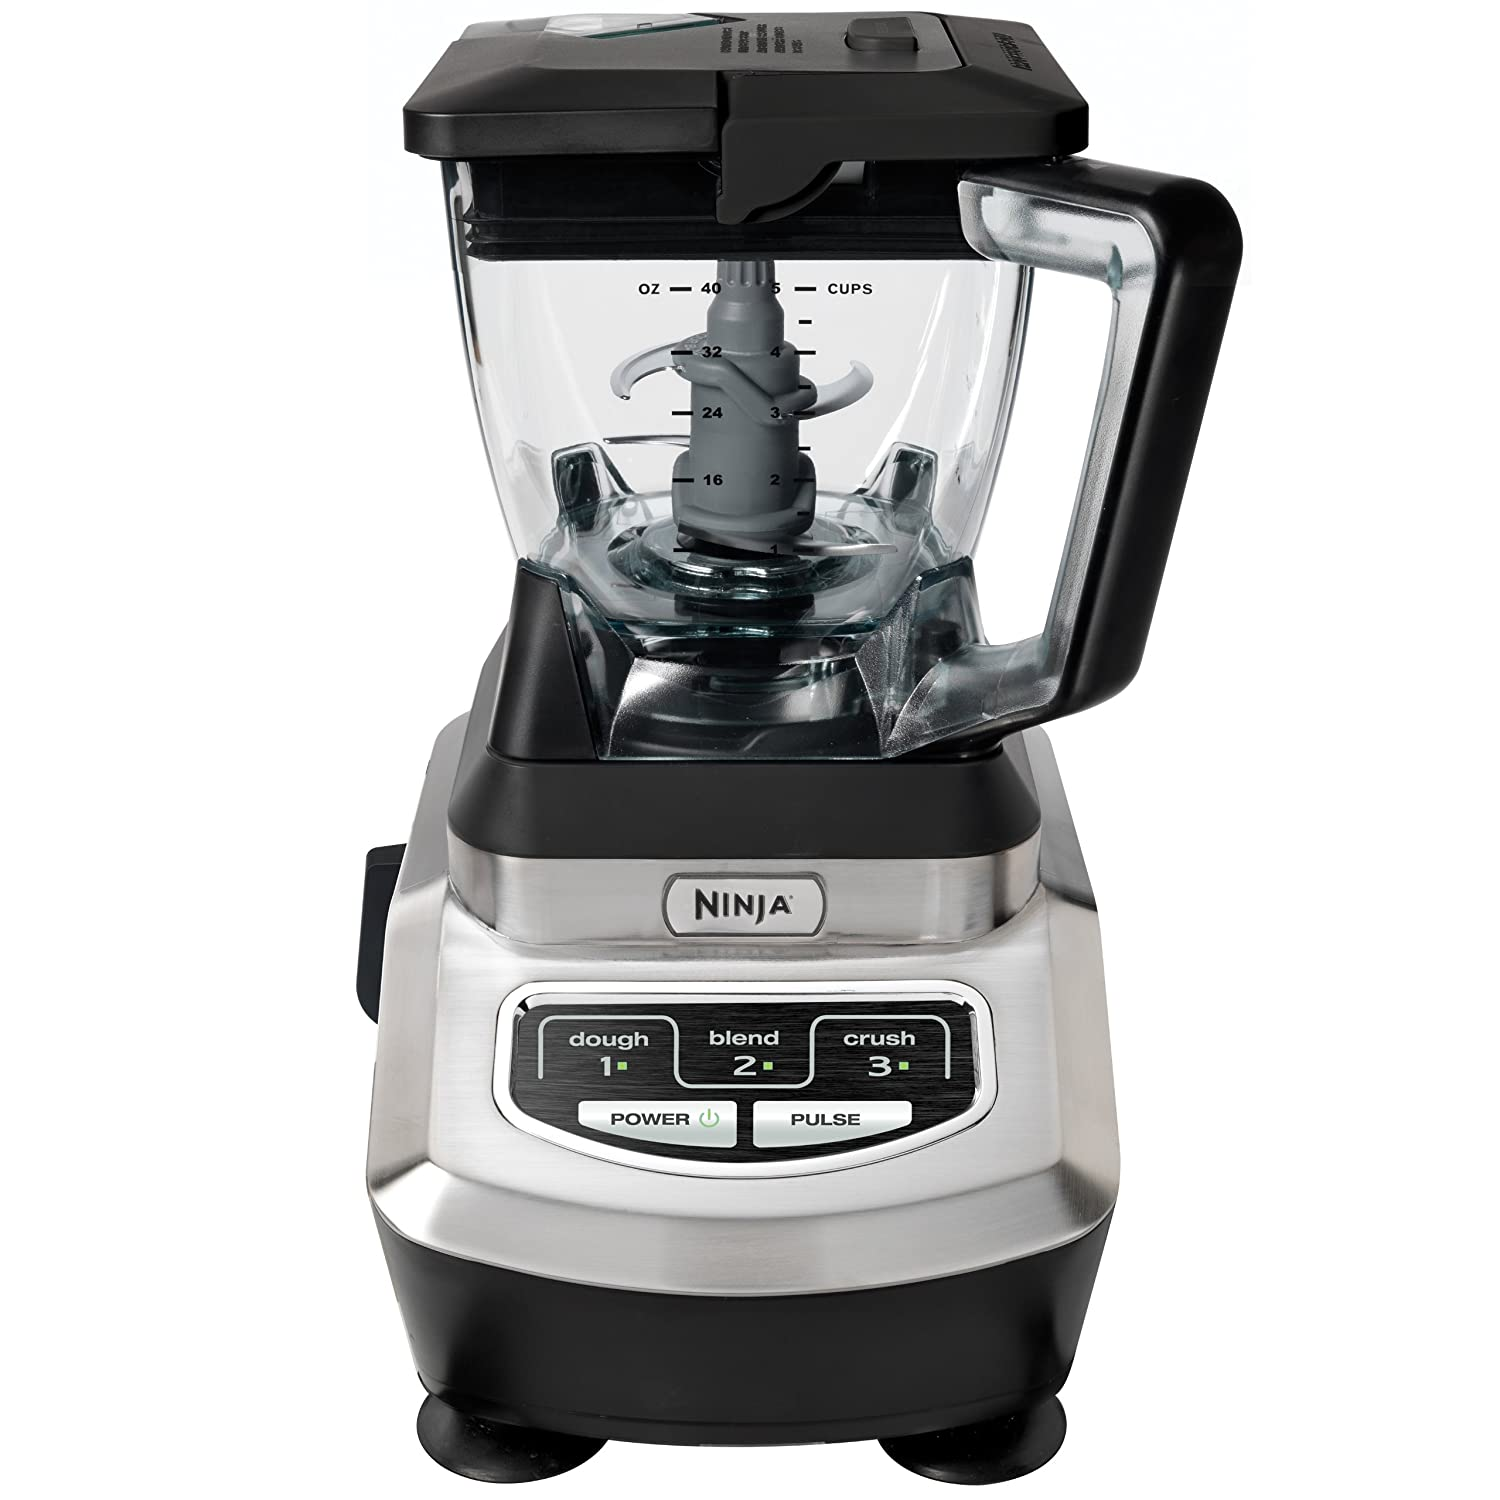 Amazon.com: Ninja Kitchen System 1200 (BL700): Electric Countertop ...